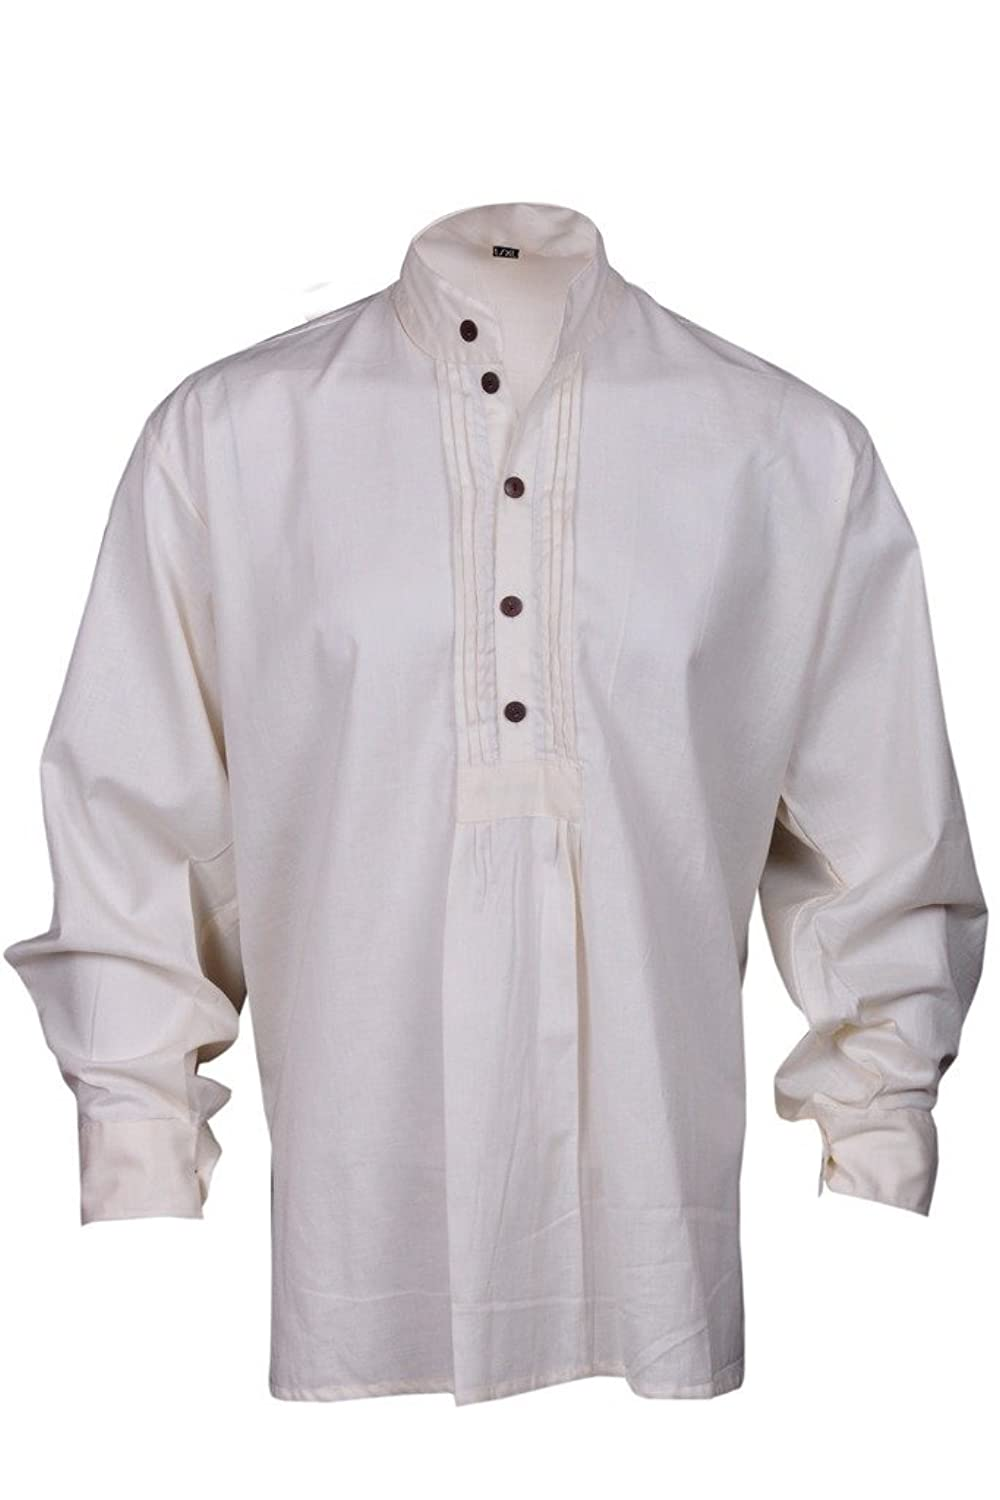 1960s Inspired Fashion: Recreate the Look GothikShop Mens Pirate Renaissance Shirt Medieval Caribbean Hippie Costume $32.00 AT vintagedancer.com